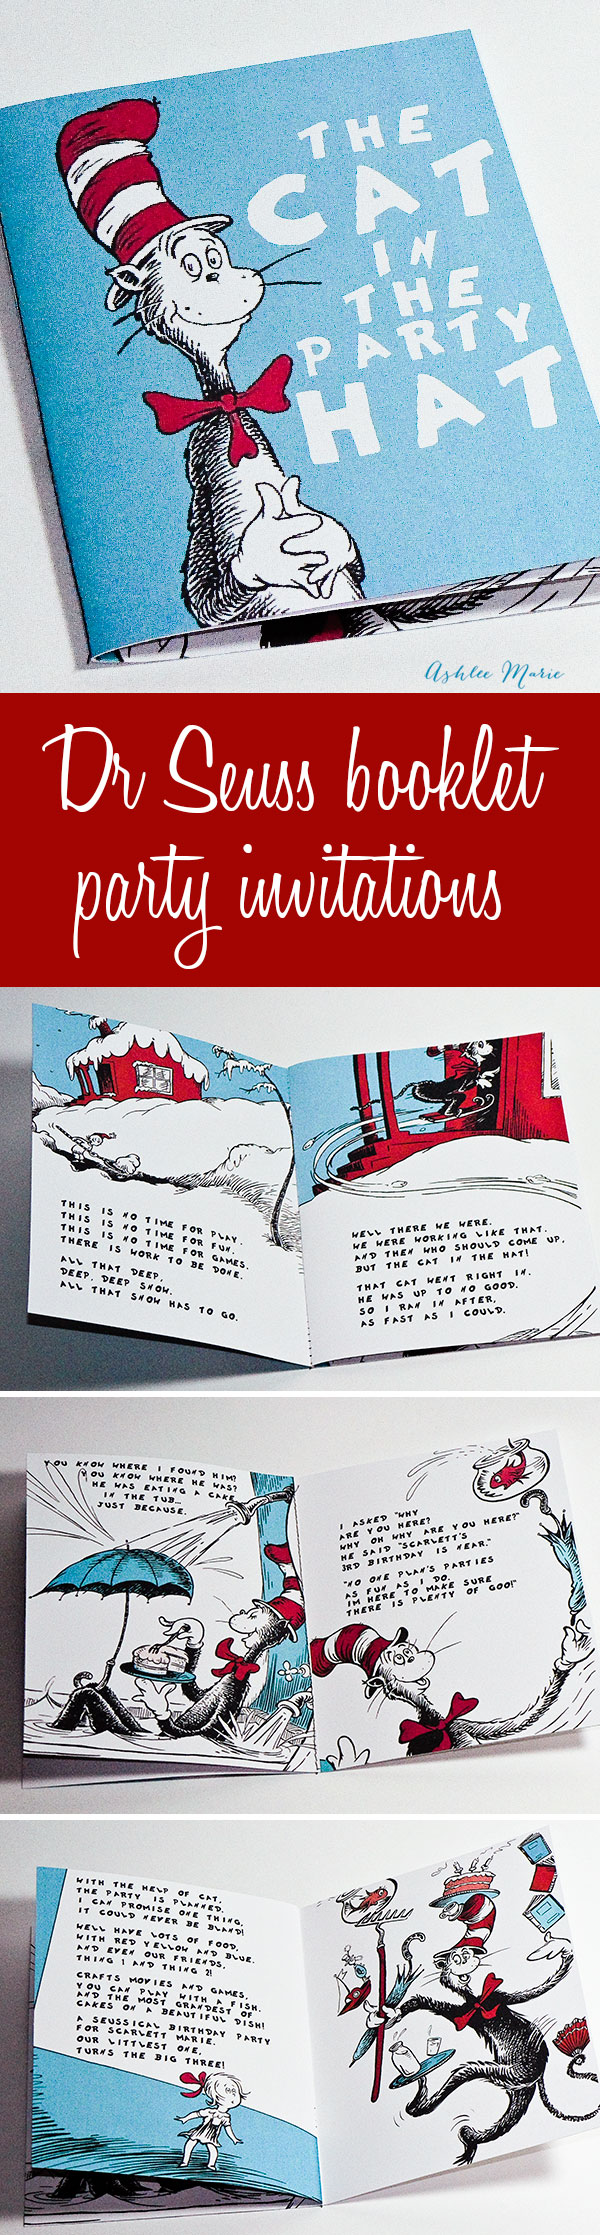 A fun booklet invitation for a Dr Seuss party - how I did it and instructions to create your own.